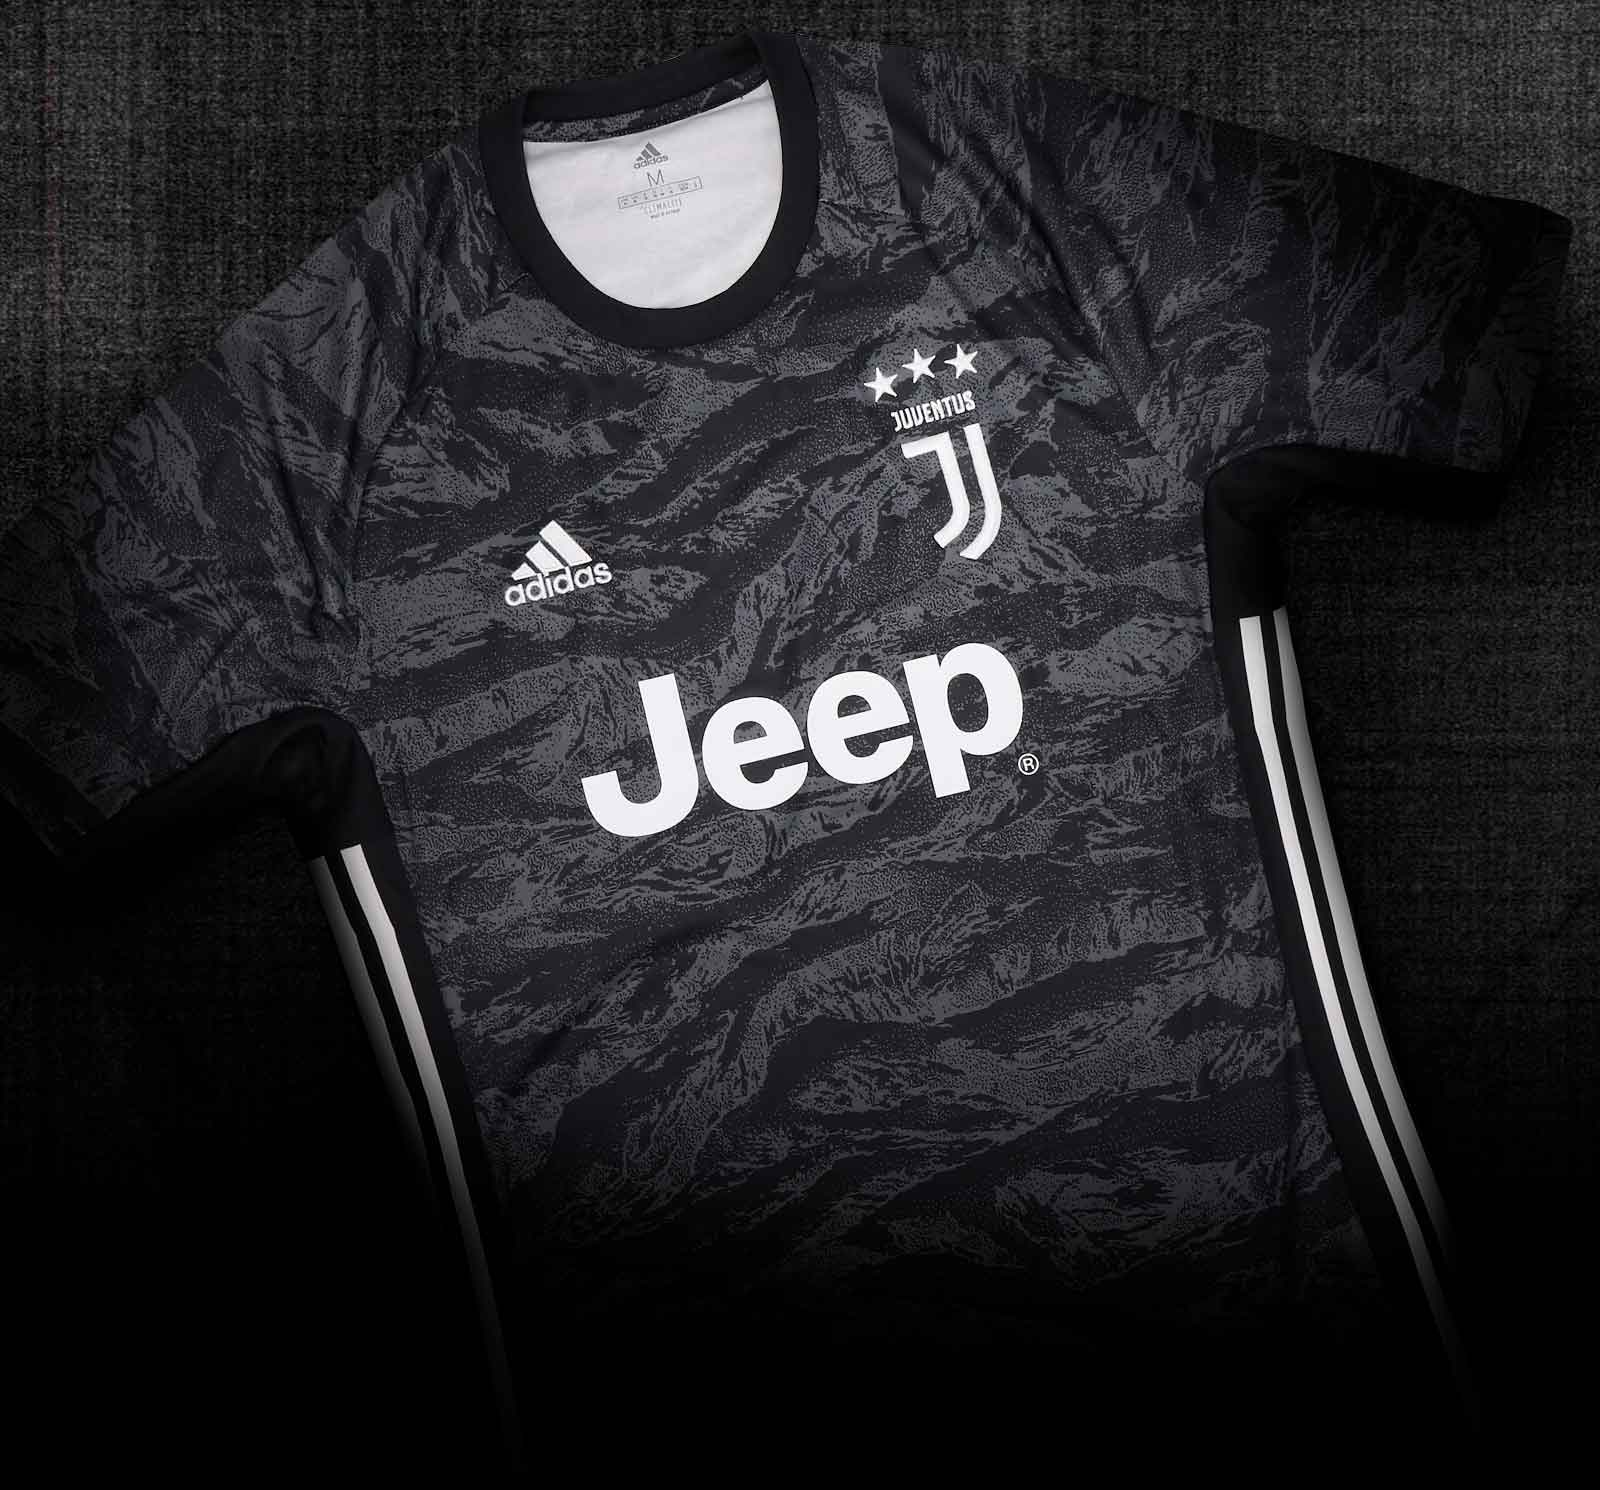 online retailer 288d5 2cc67 Juventus 19-20 Goalkeeper Kit Released - Leaked Soccer ...